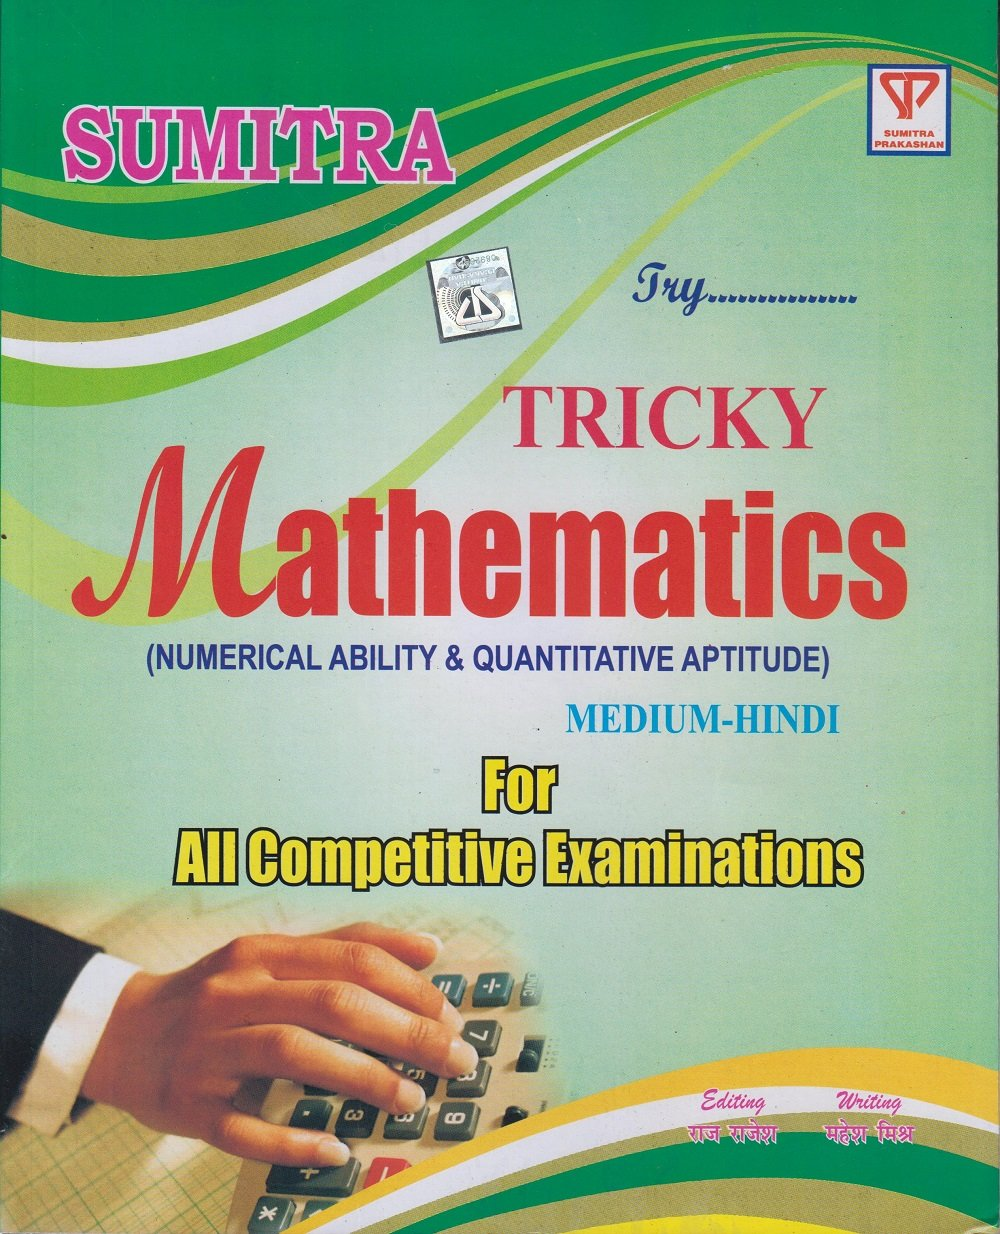 Buy Sumitra Tricky Mathematics for All Competitive Examinations Book ...